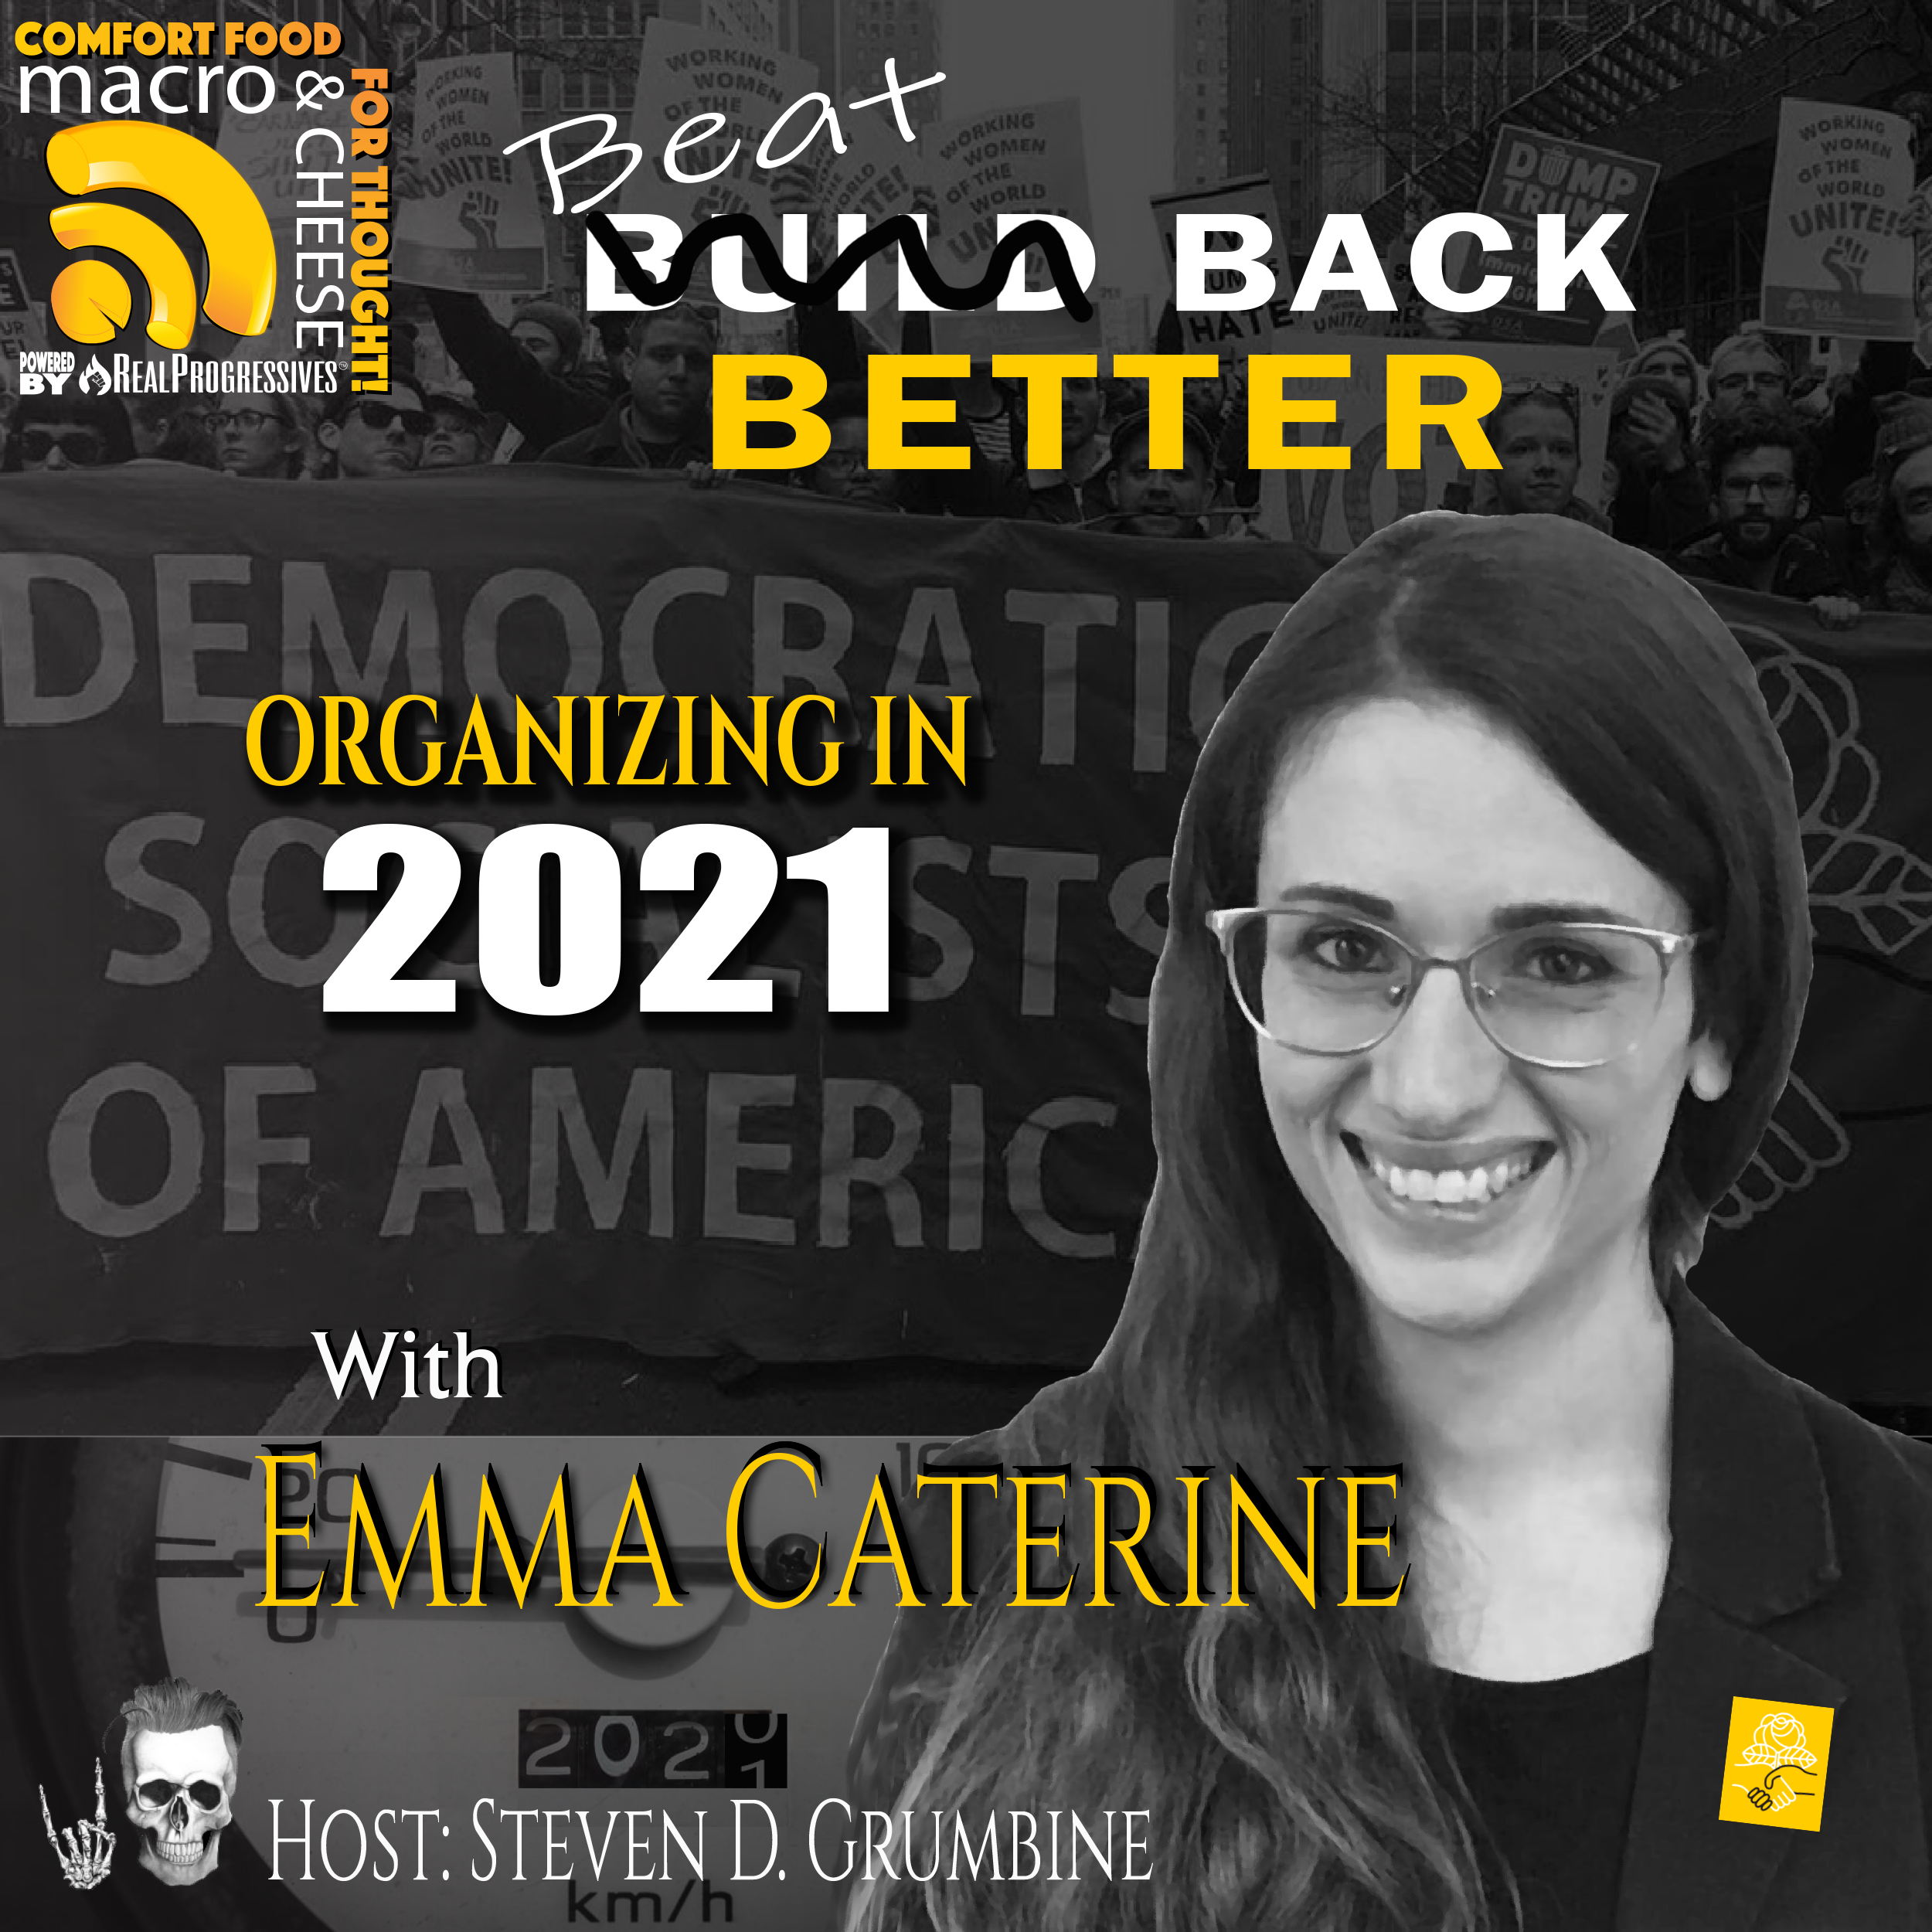 Beat Back Better: Organizing in 2021 with Emma Caterine